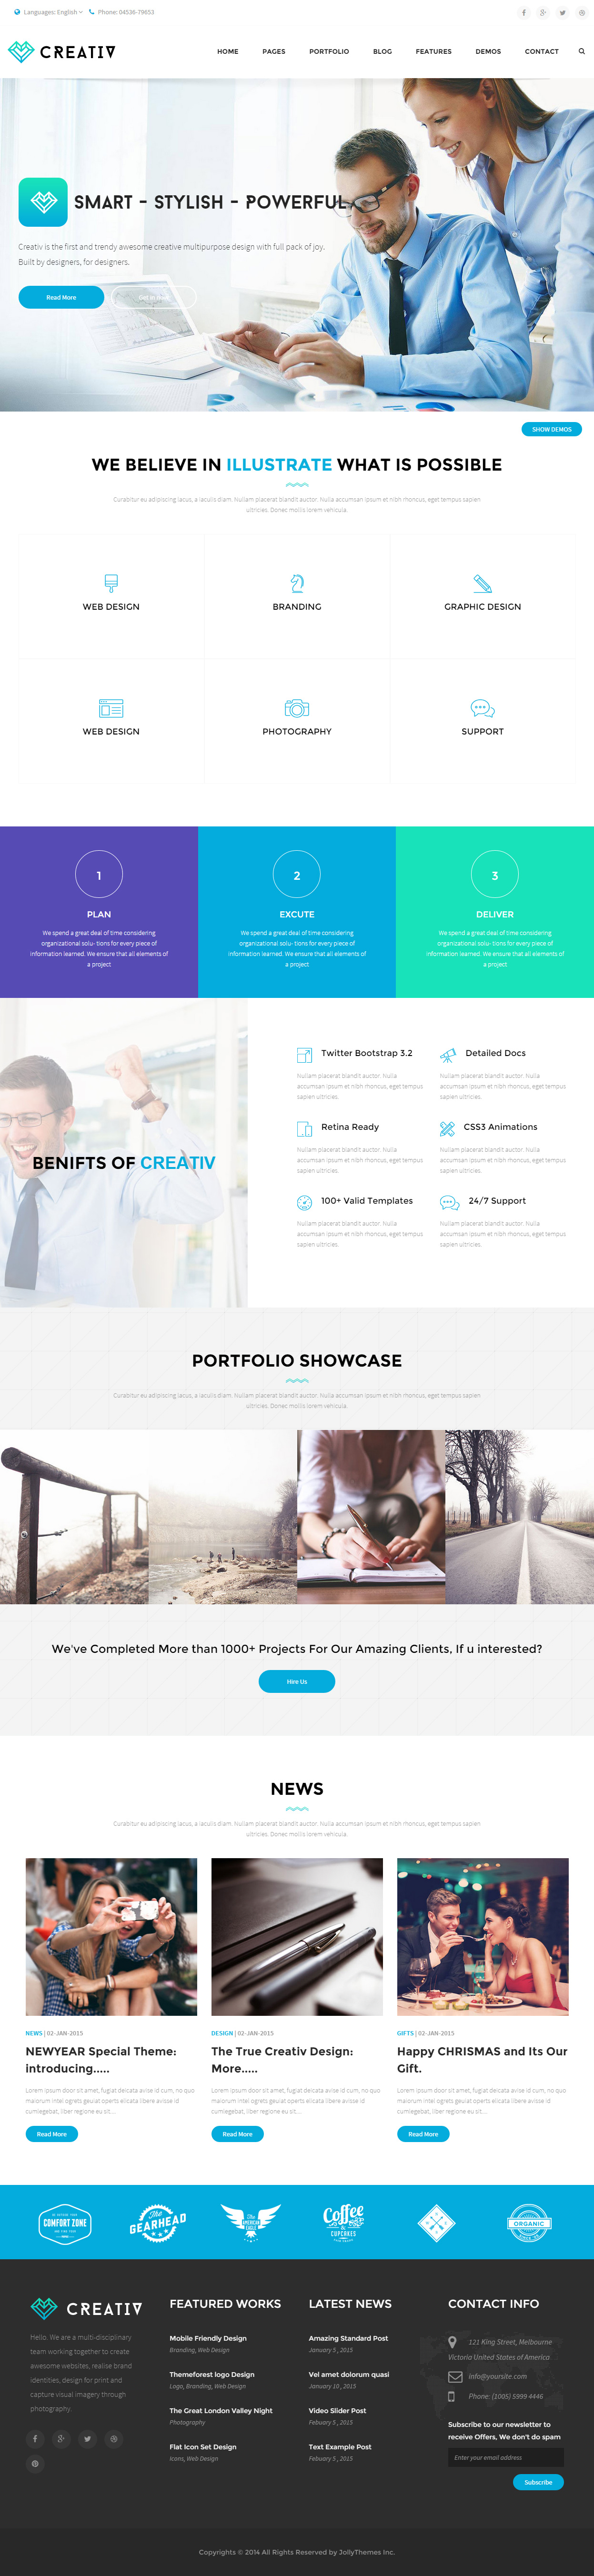 75+ Best Responsive Bootstrap HTML5 Templates 2015 - Responsive ...